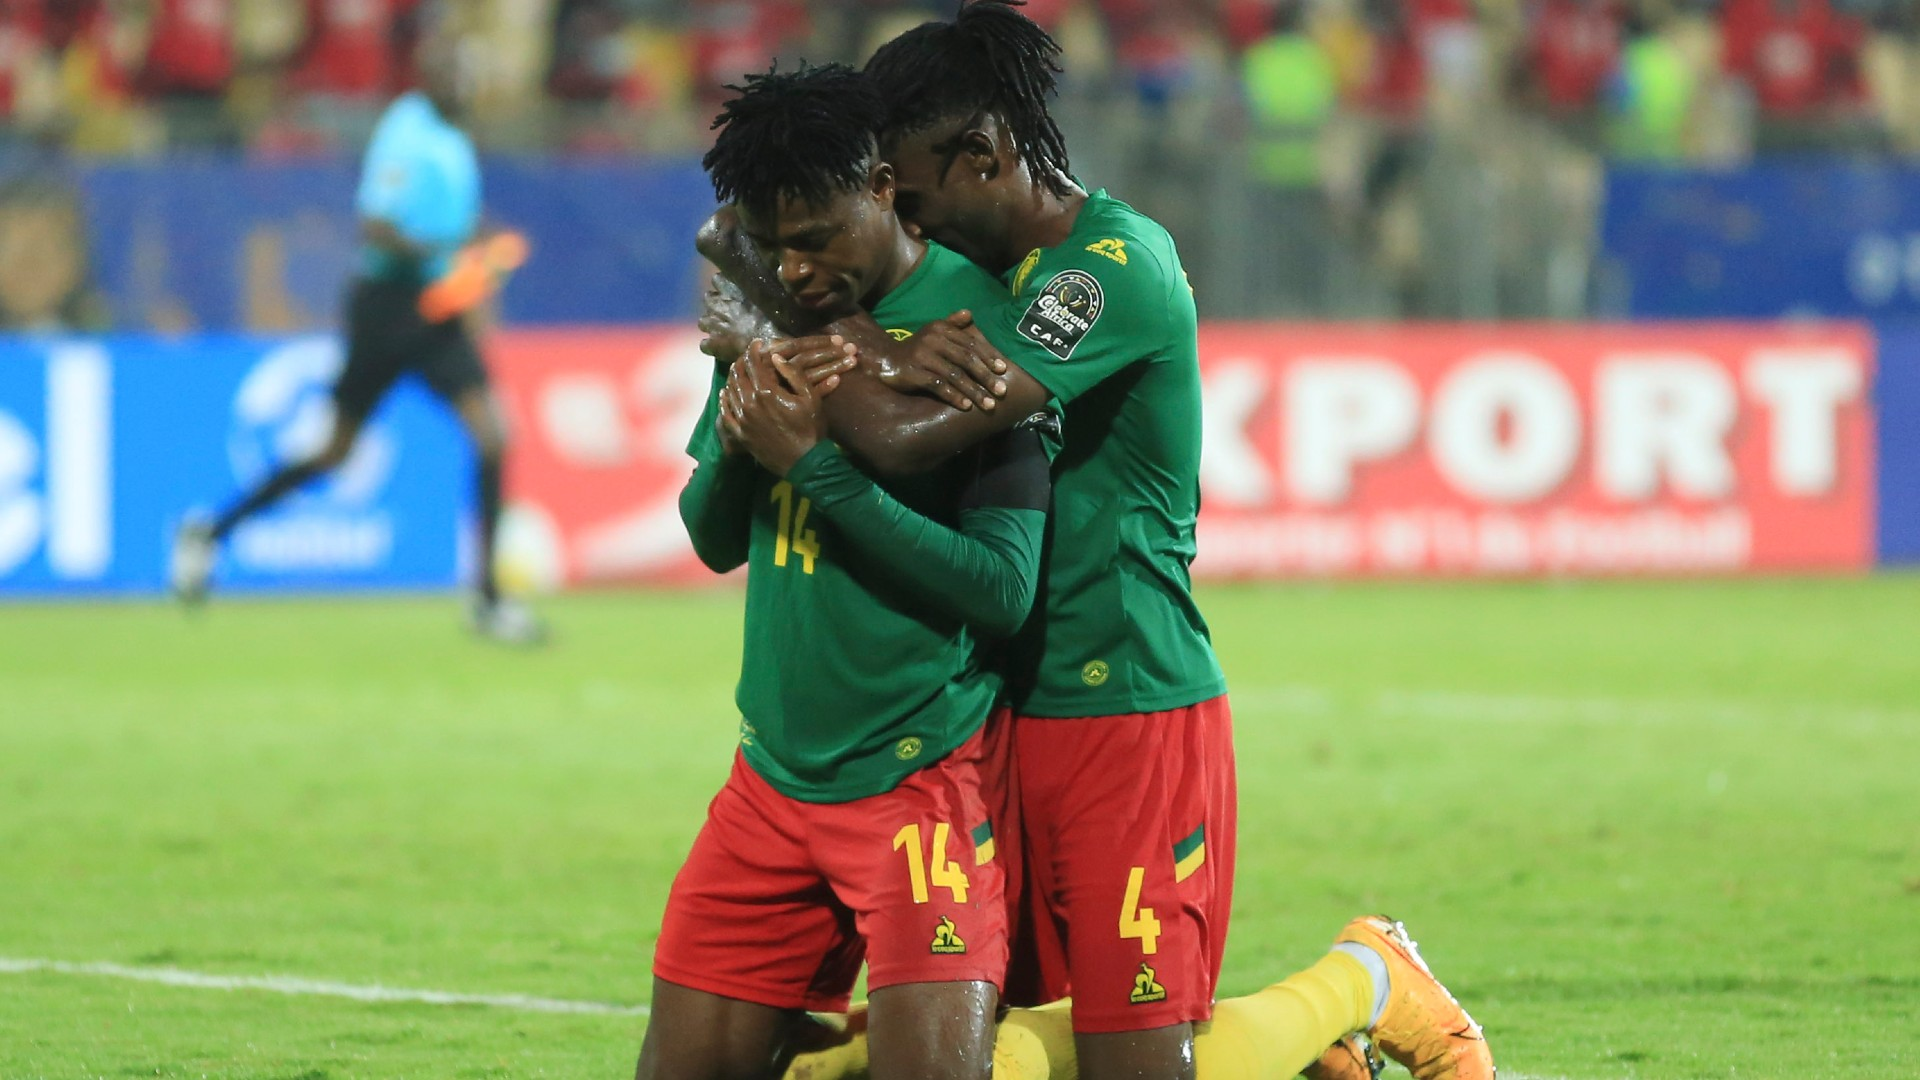 Chan 2021 Wrap: Cameroon and Mali seal progression to semis as DR Congo & Congo crash out